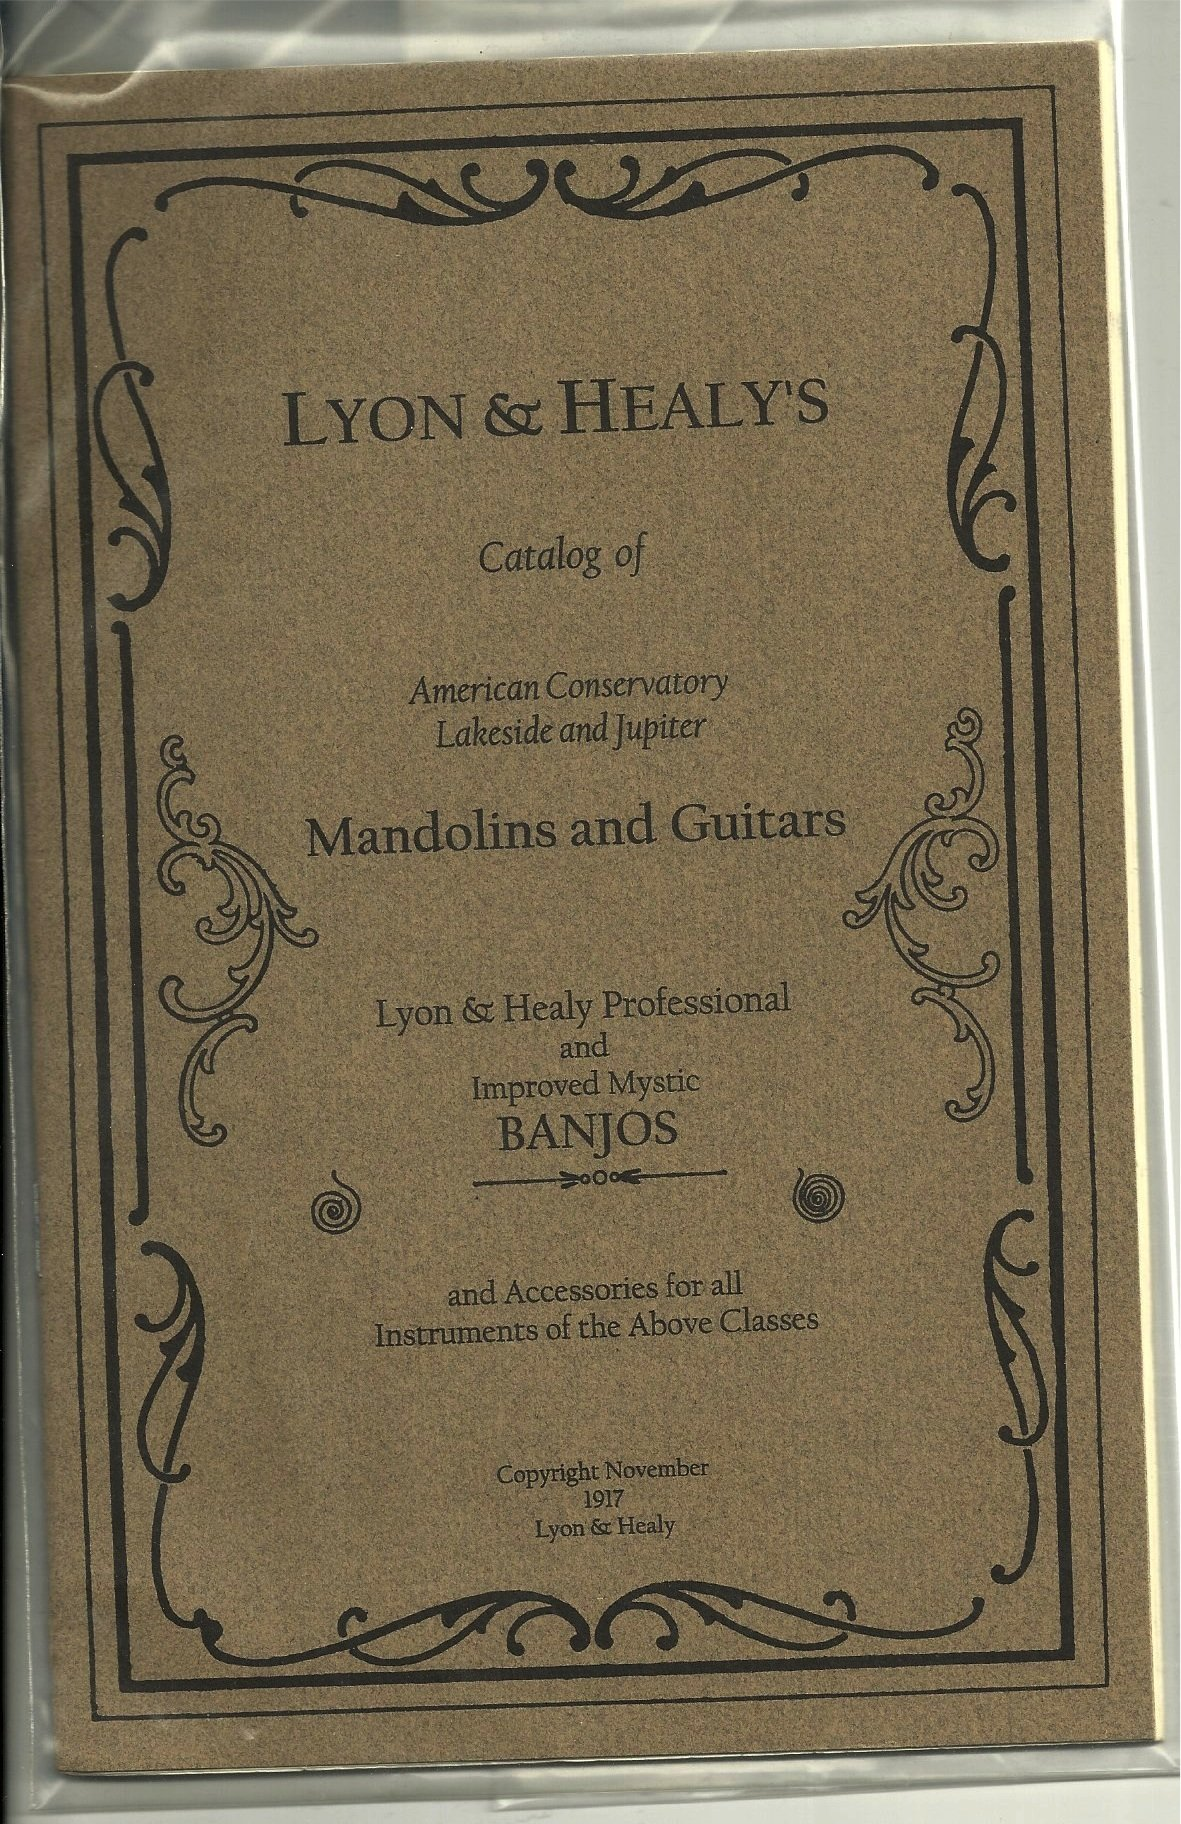 Lyon & Healy's Catalog of American Conservatory Lakeside and Jupiter